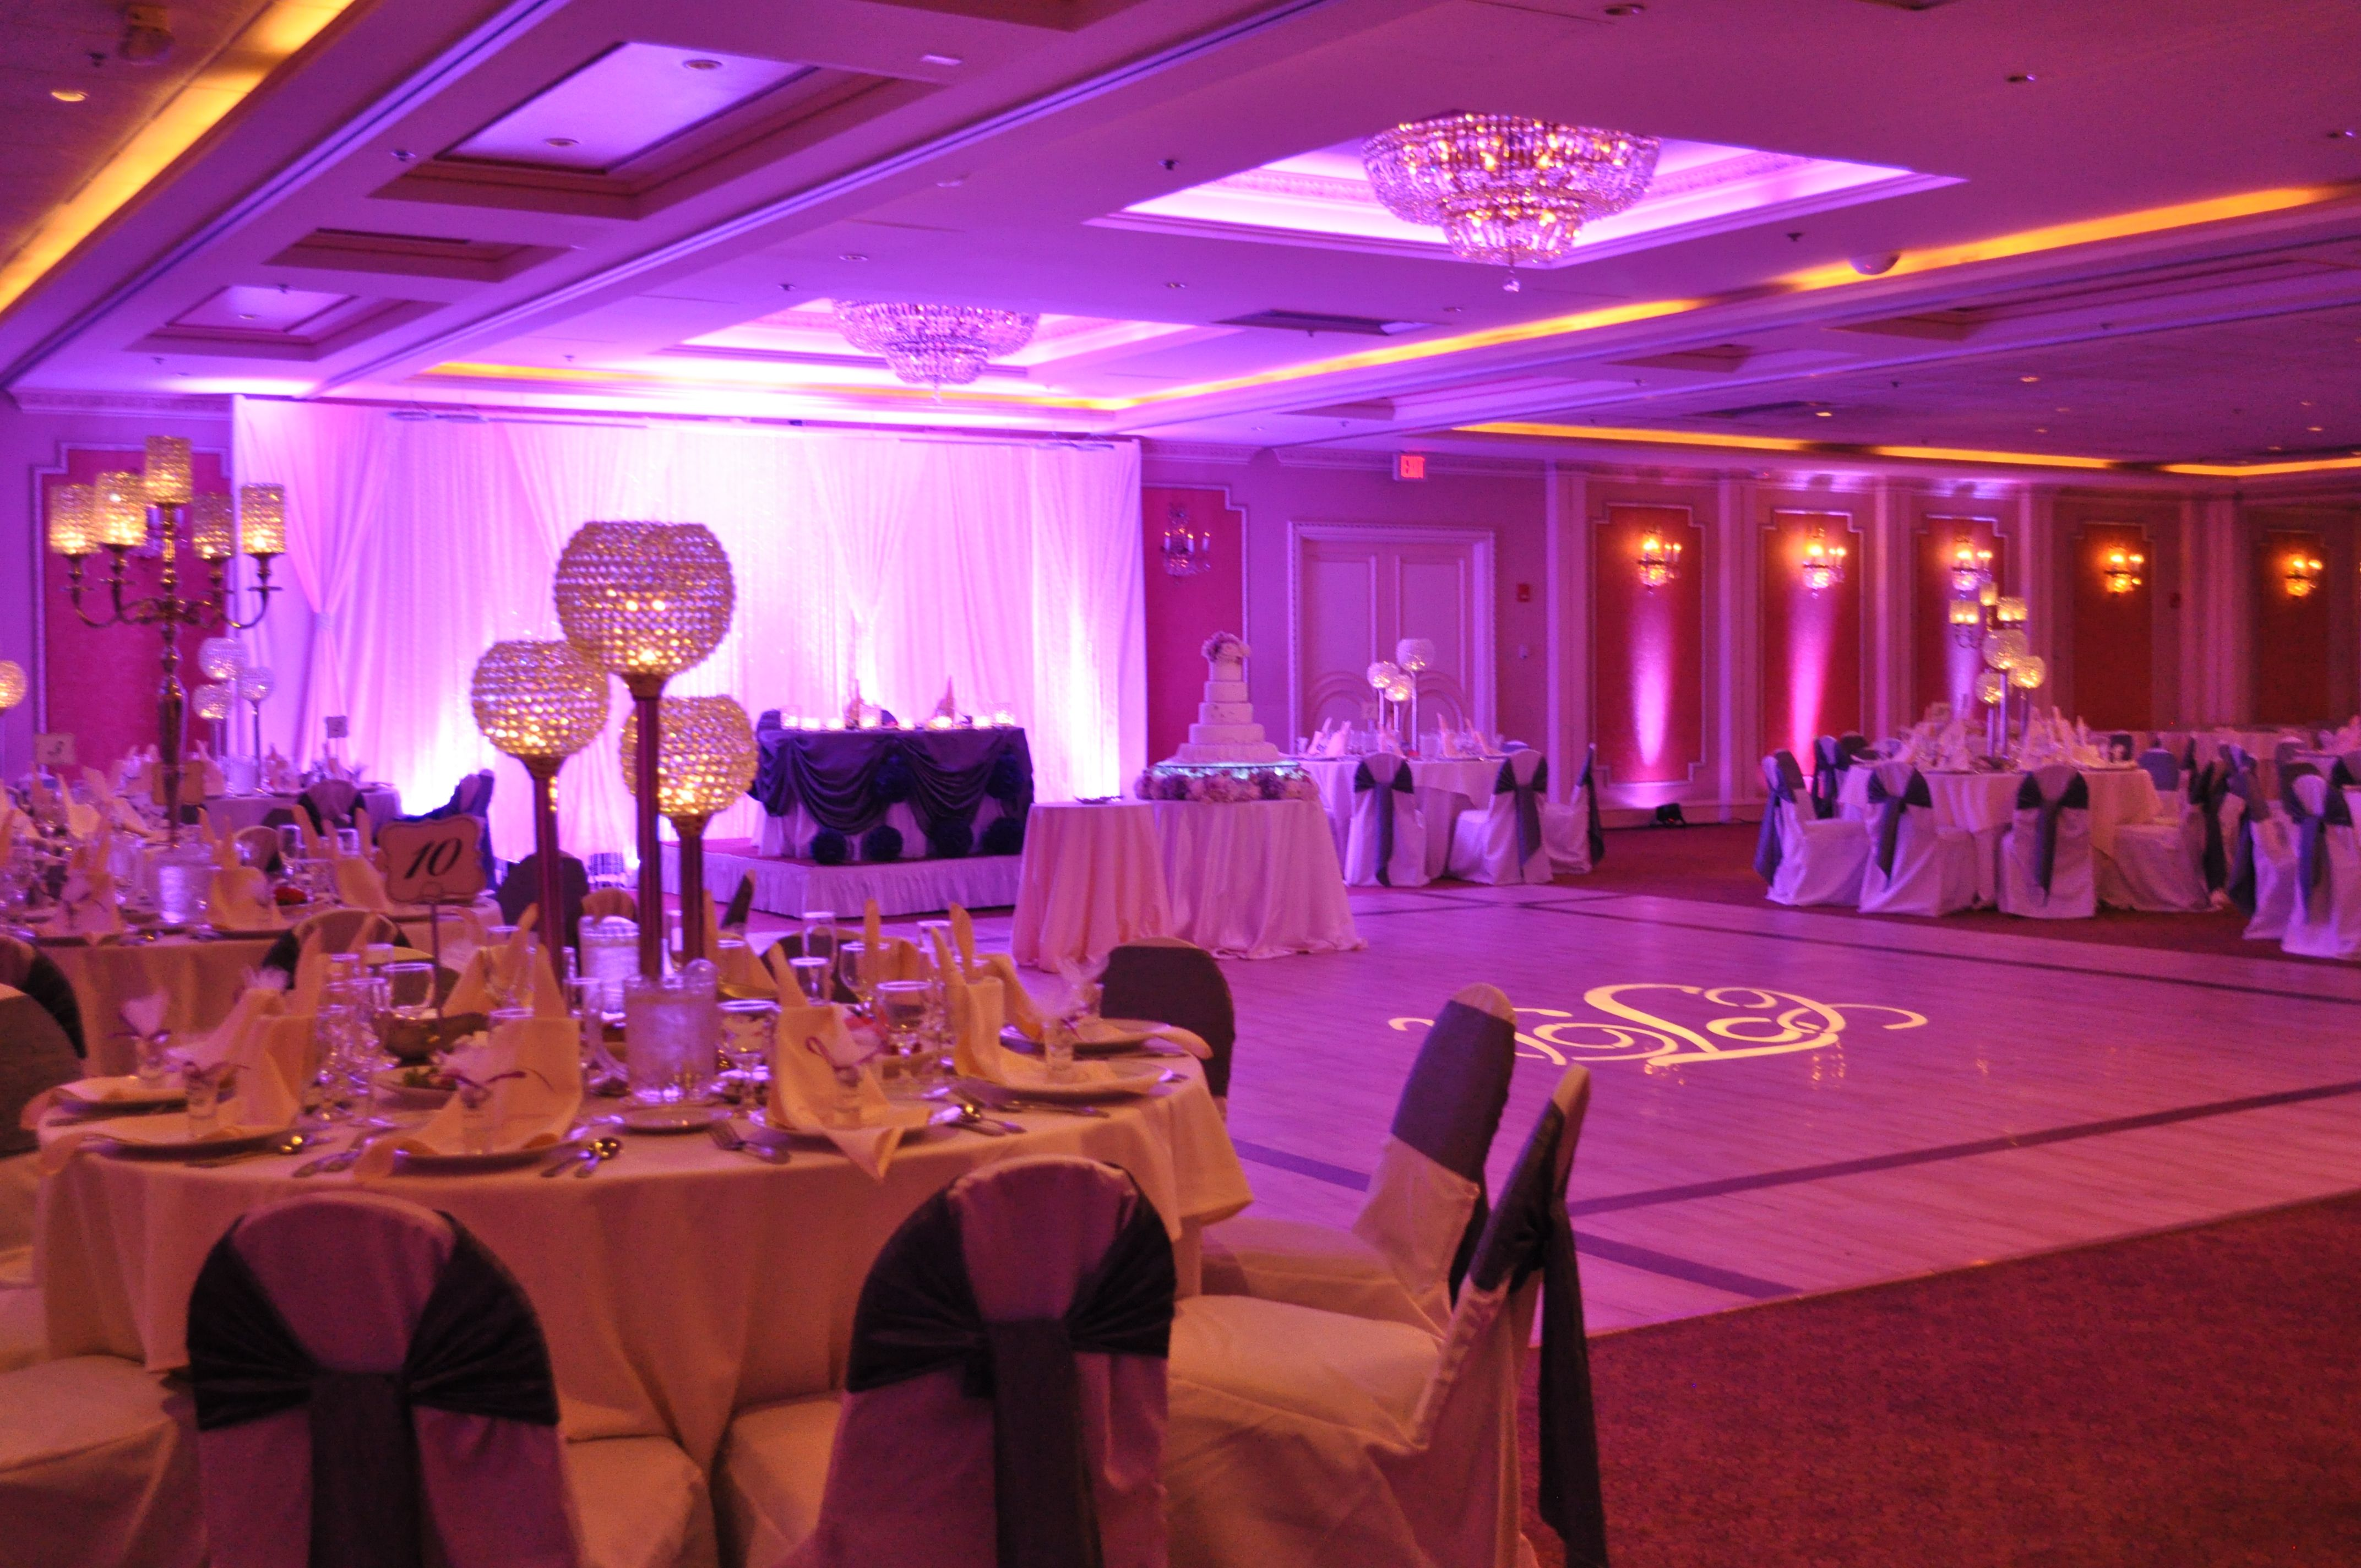 Timeless Elegance Is Evident In Every Detail Of This Premier Banquet Hall Nestled In The Heart Of Chicago Wedding Venues Elegant Wedding Venues Wedding Venues